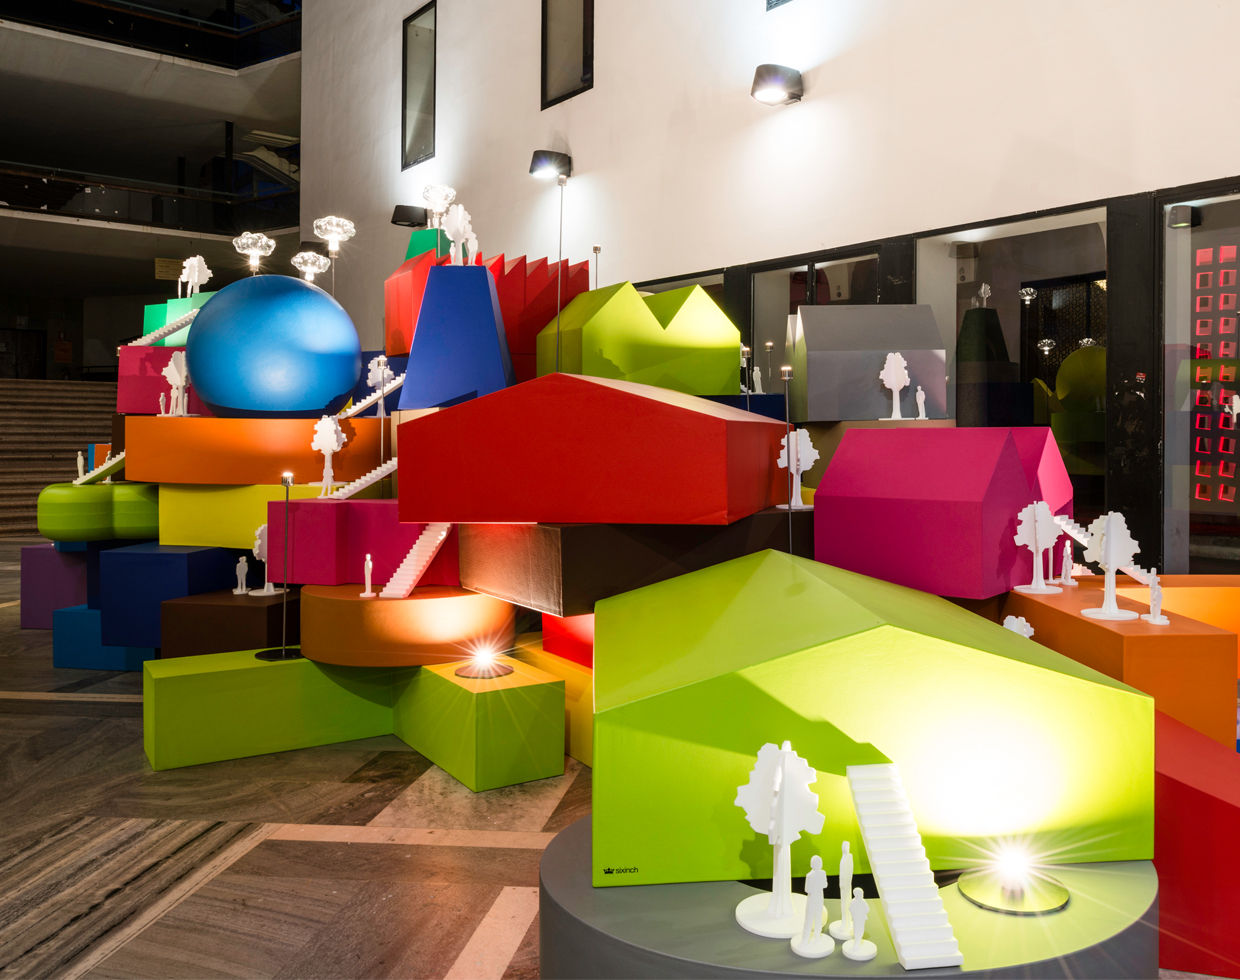 Vertical Village Sculpture at the Salone 2014, Milan